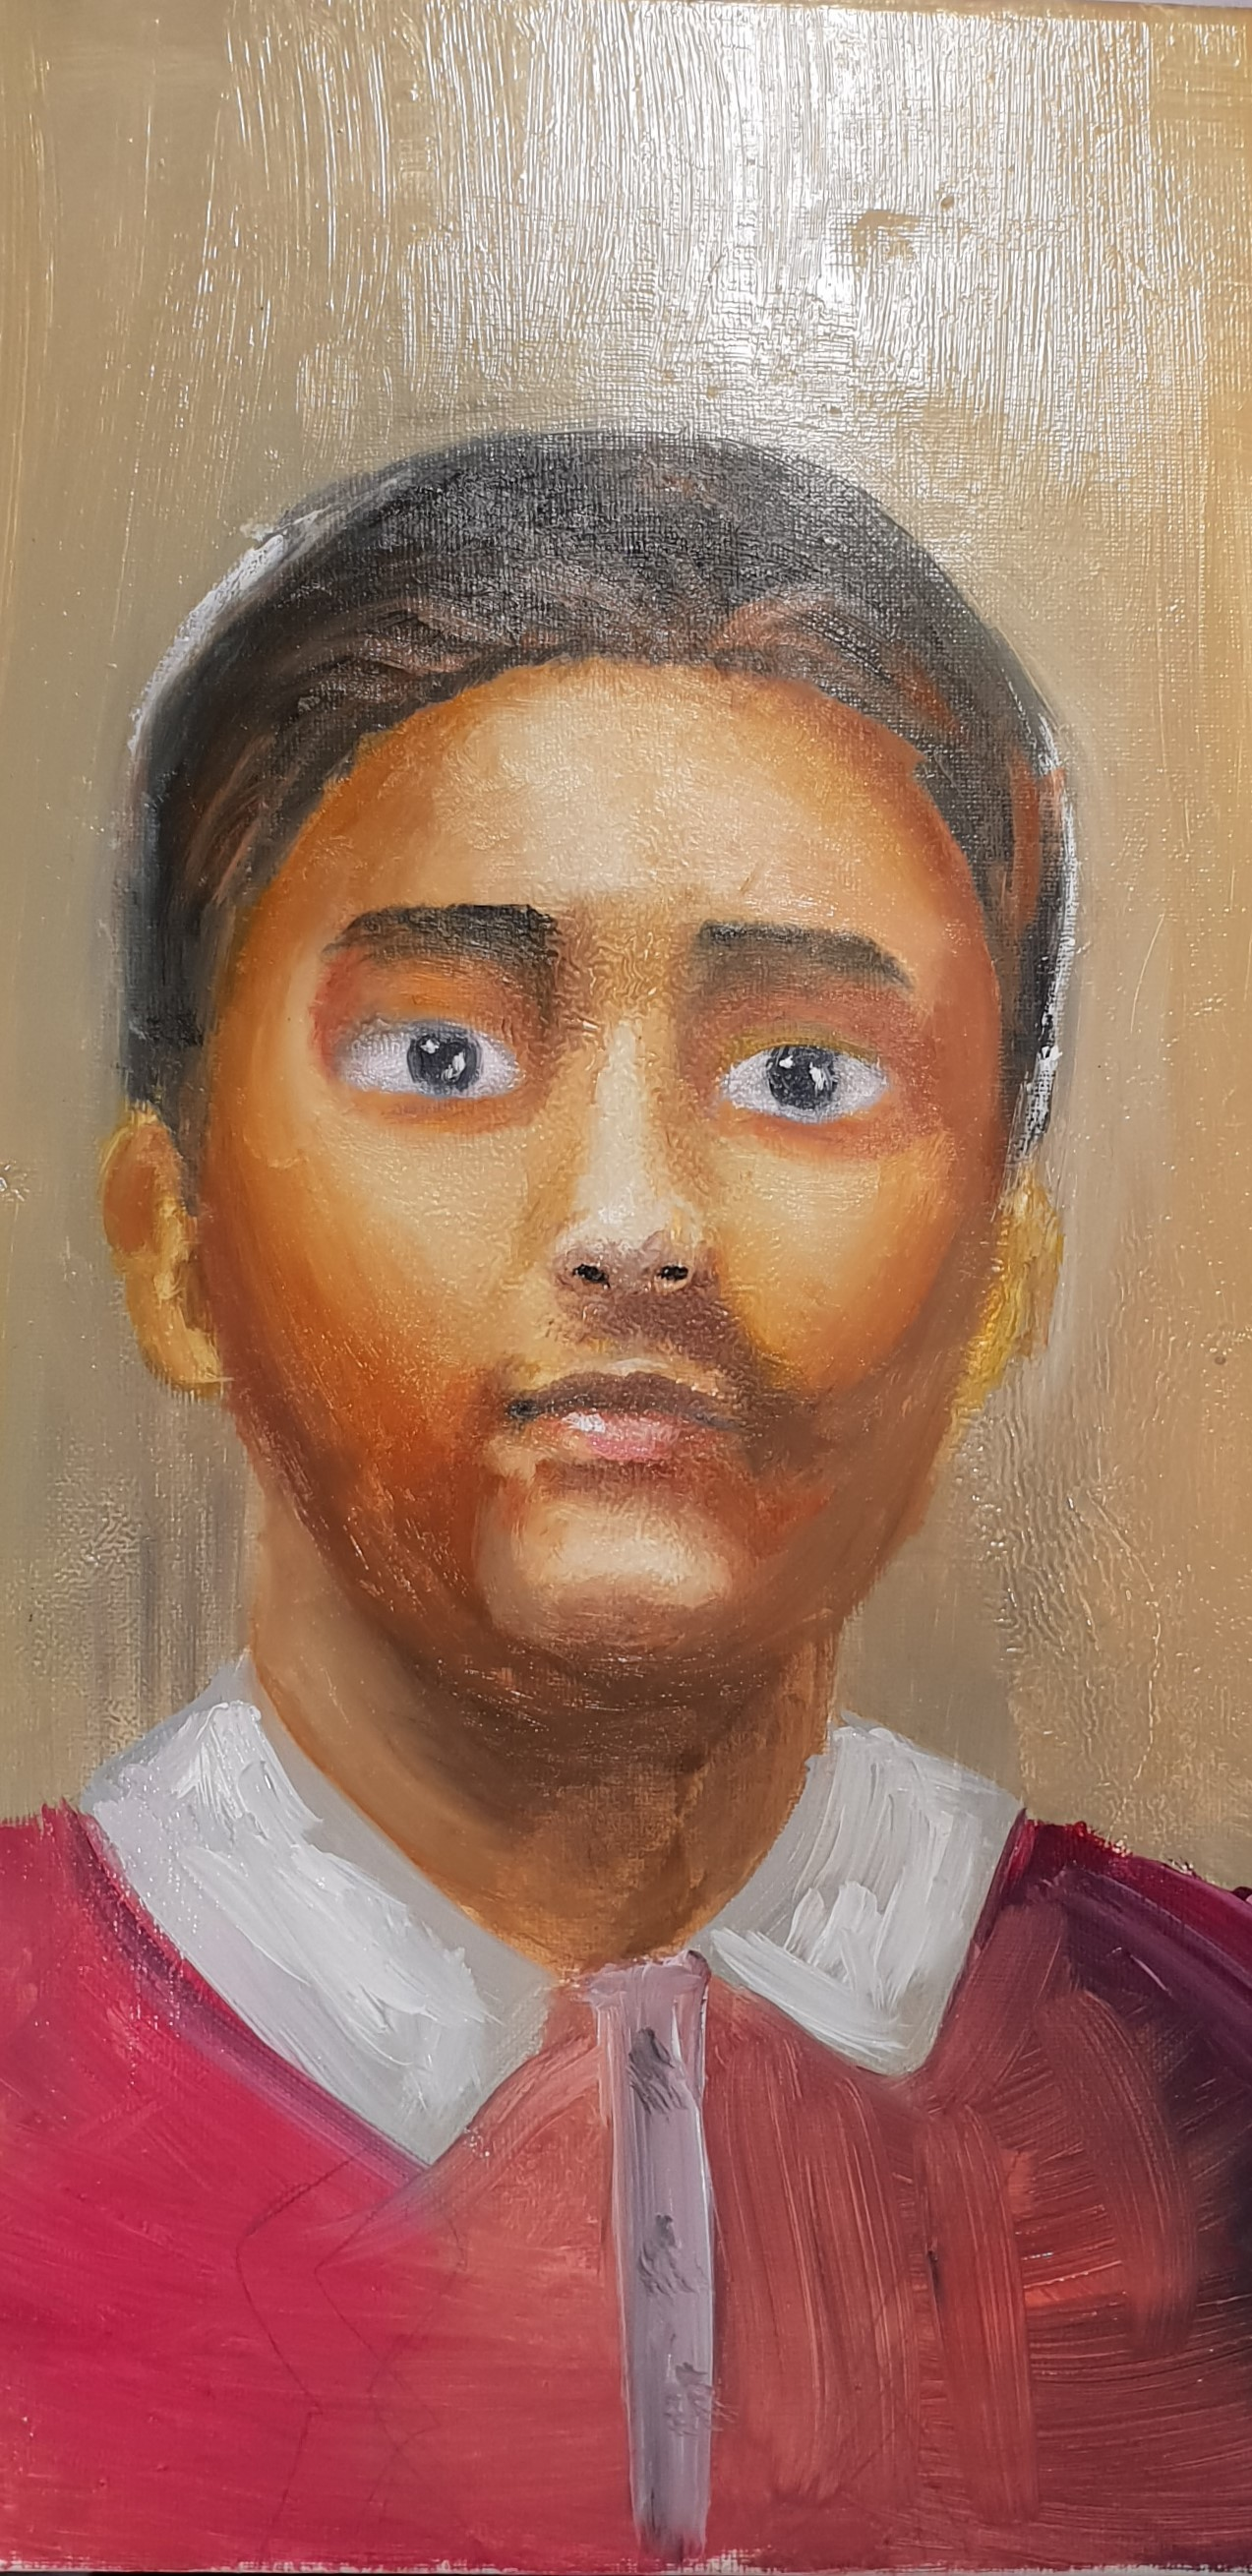 Hassan's oil painting